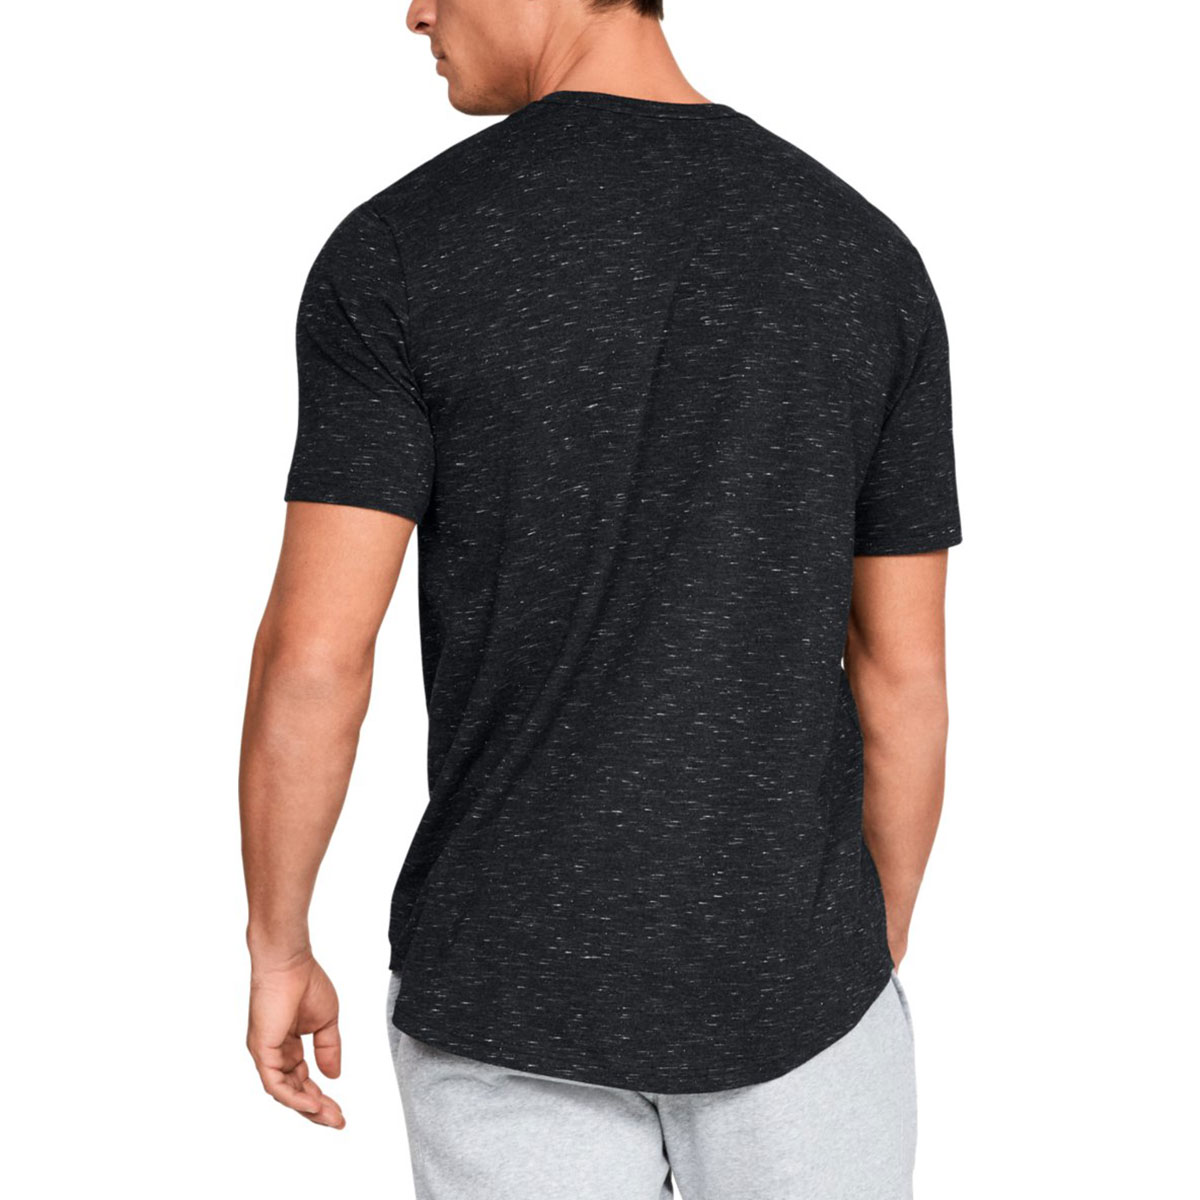 Under-Armour-Mens-UA-Sportstyle-SS-Moisture-Wicking-T-Shirt-39-OFF-RRP thumbnail 3